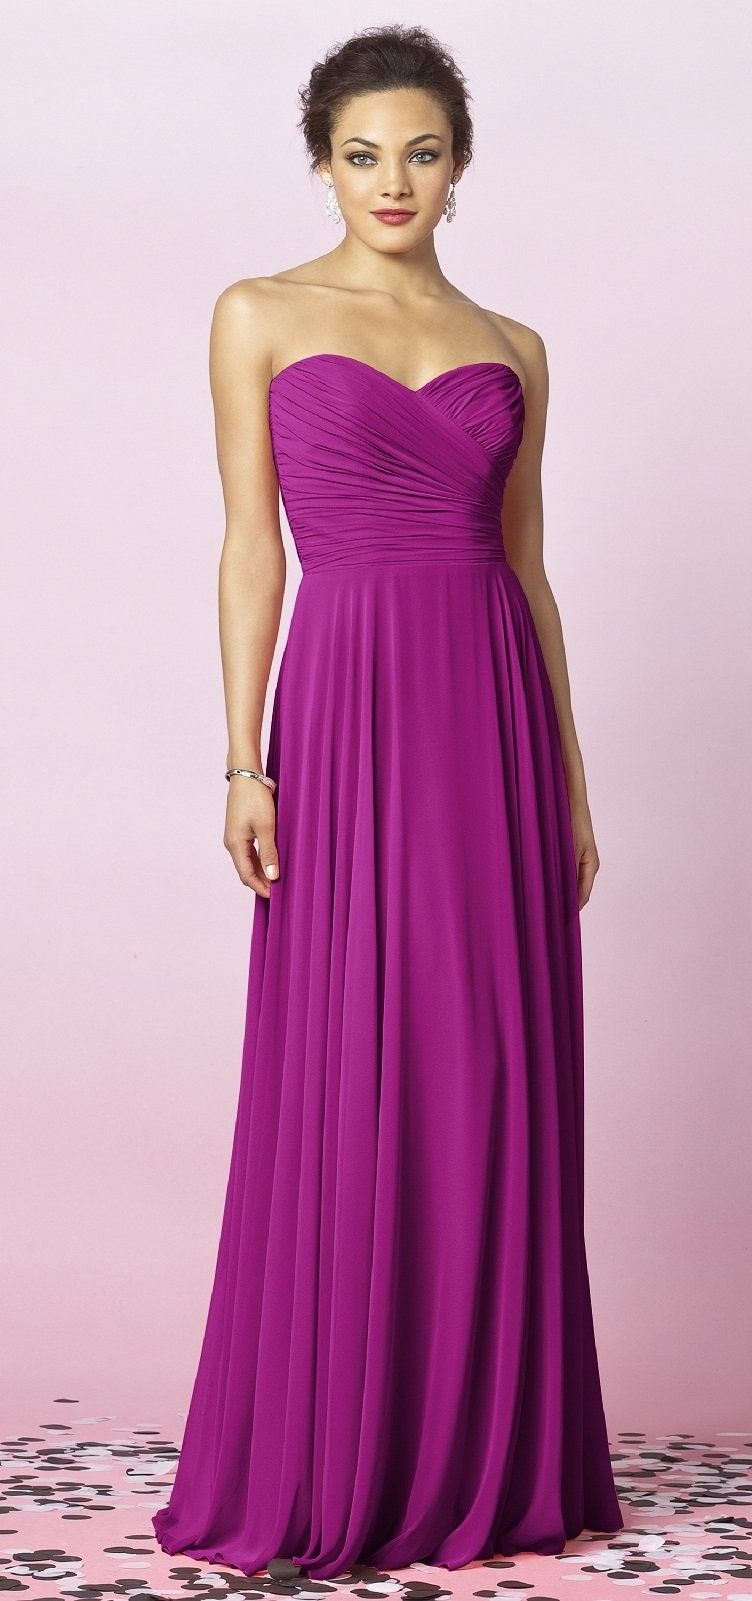 b6f1805b96e Magenta Bridesmaid Dresses – Fashion dresses